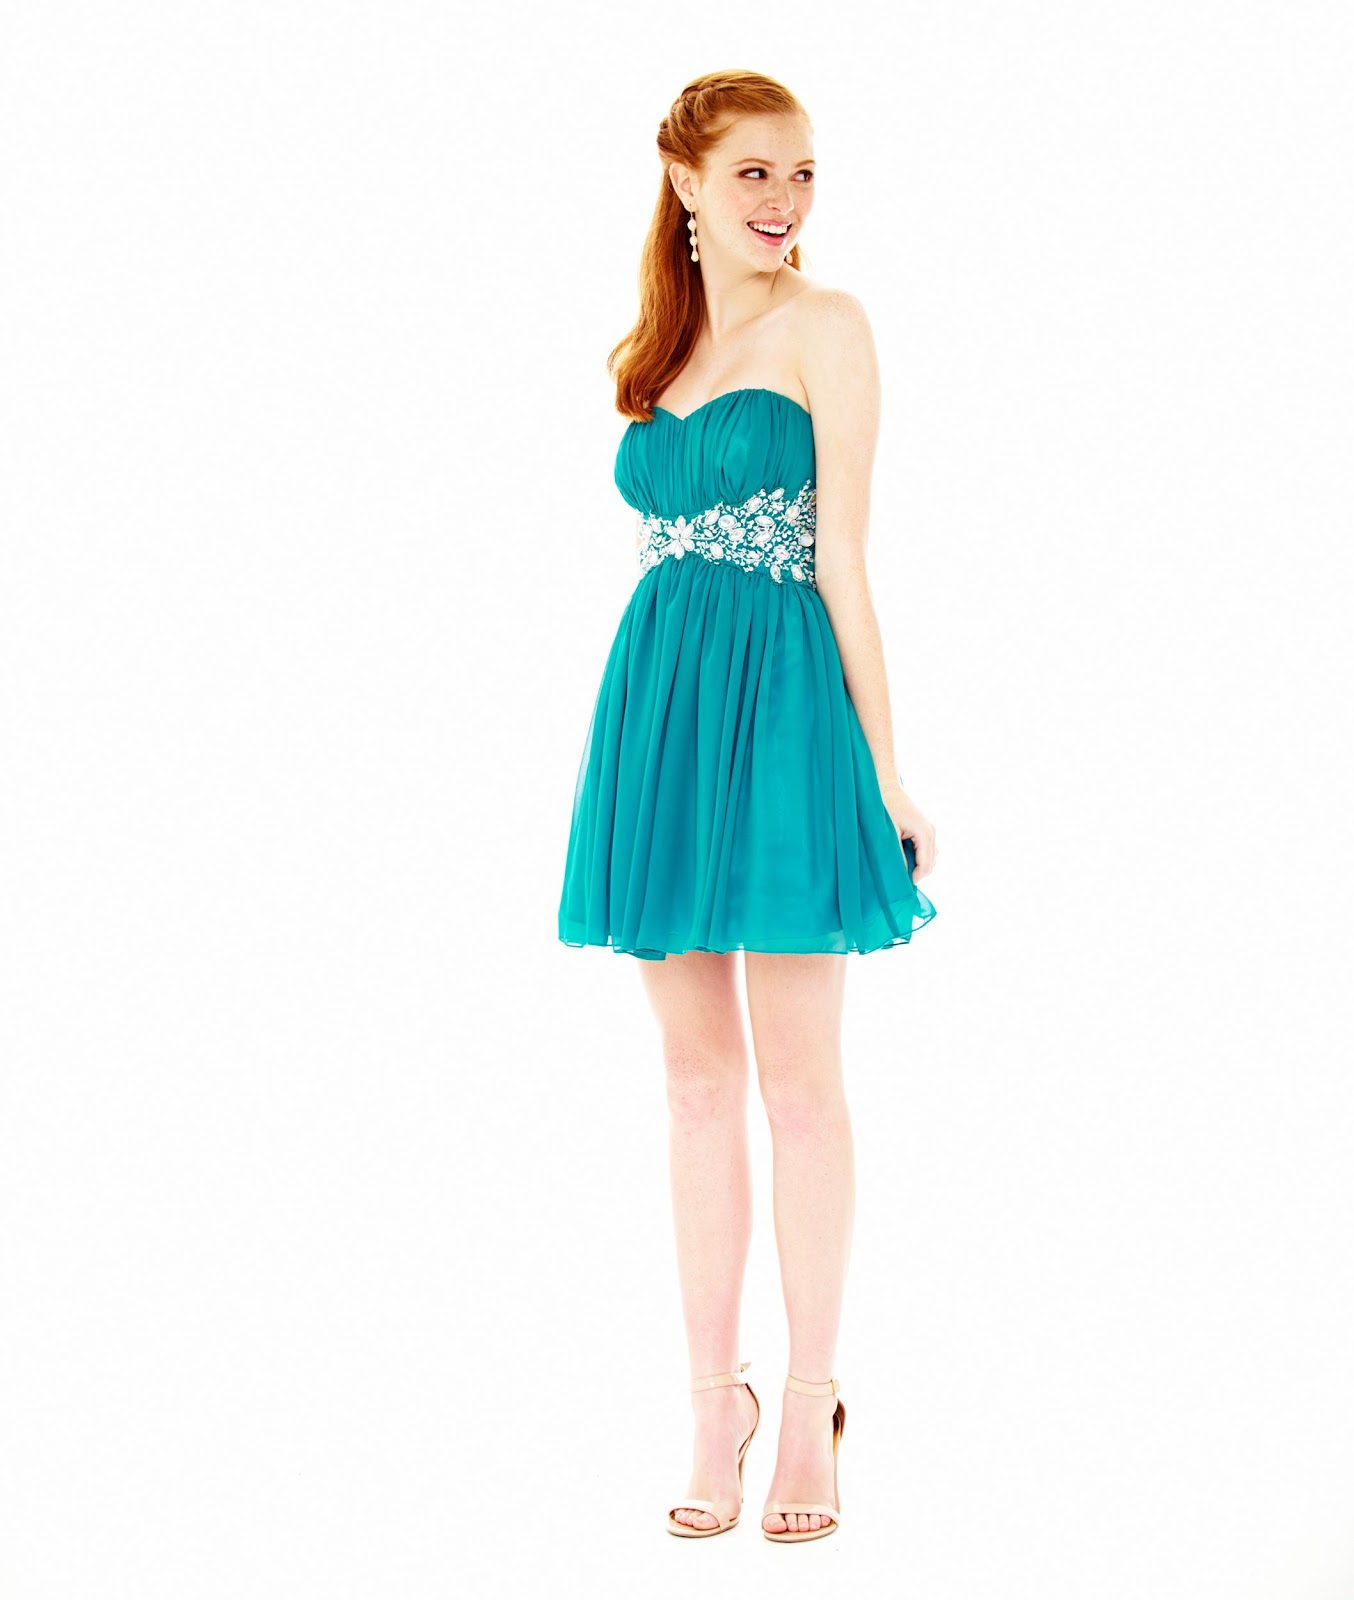 jcpenney green dress jcpenney wedding dresses Images of Jcpenney Holiday Dresses The Fashions Of Paradise Images Of Jcpenney Holiday Dresses The Fashions Of Paradise